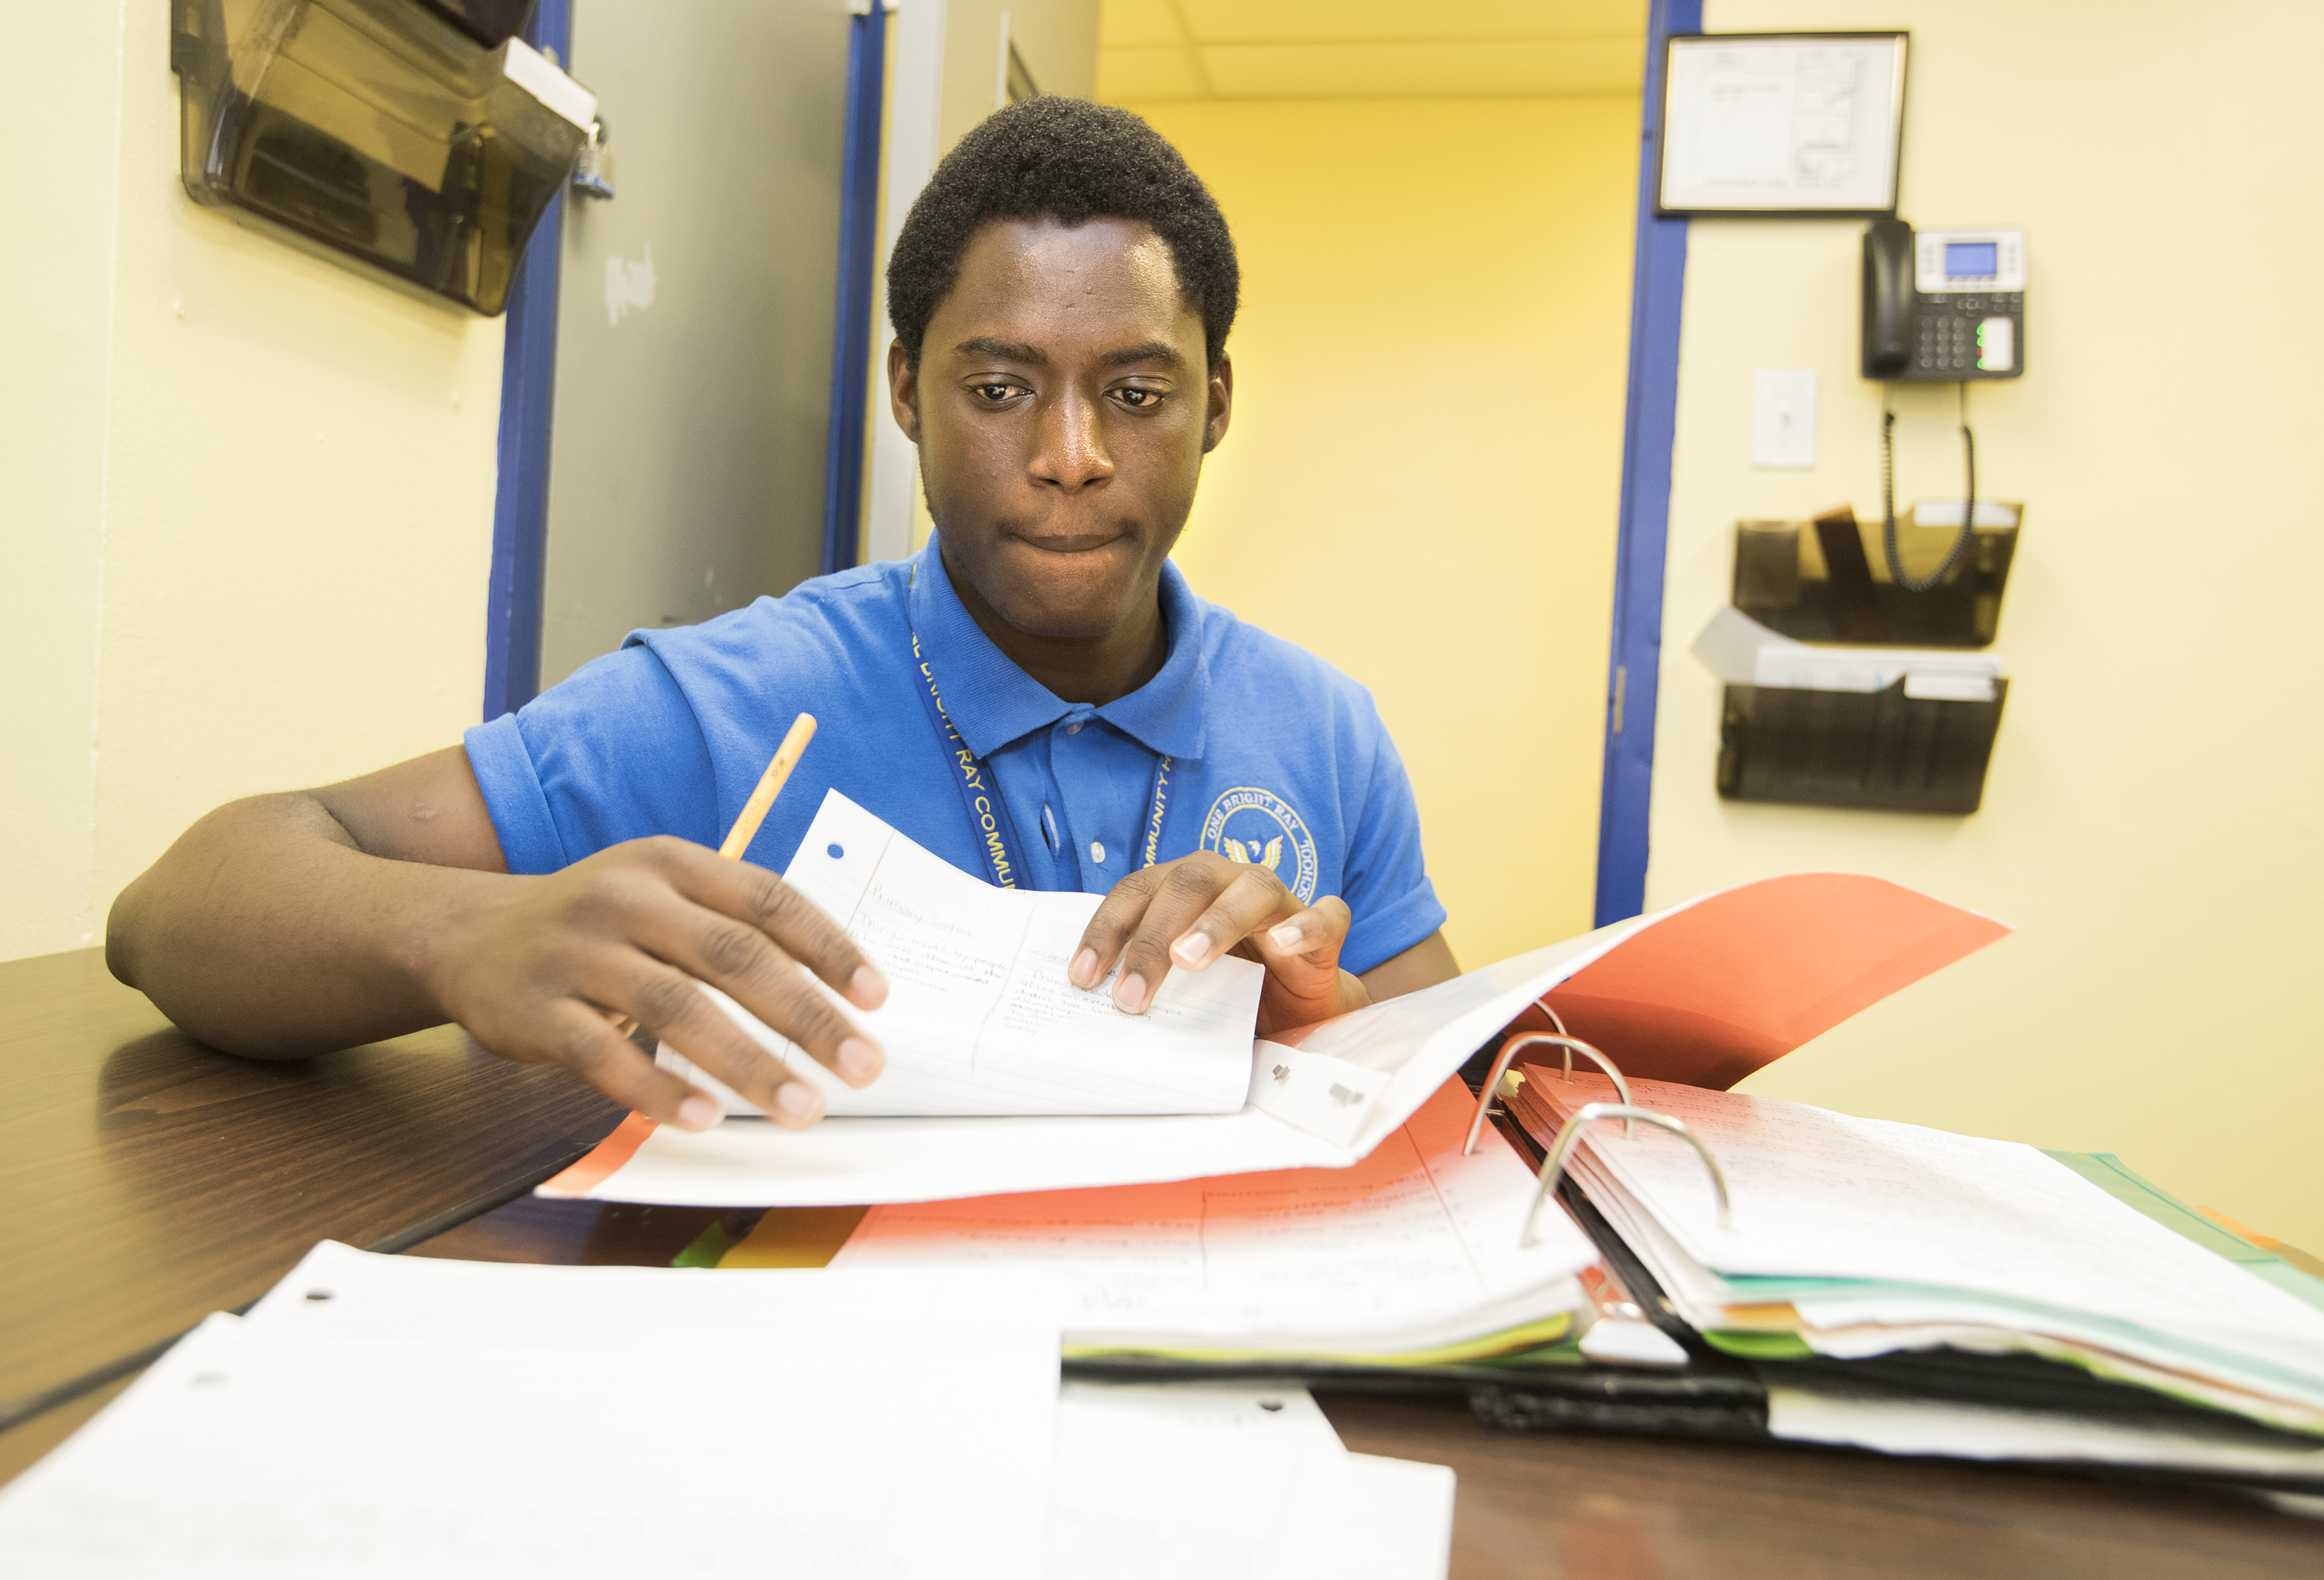 Isaac Appiahene works on a quiz at One Bright Ray Community High School in Fairhill.